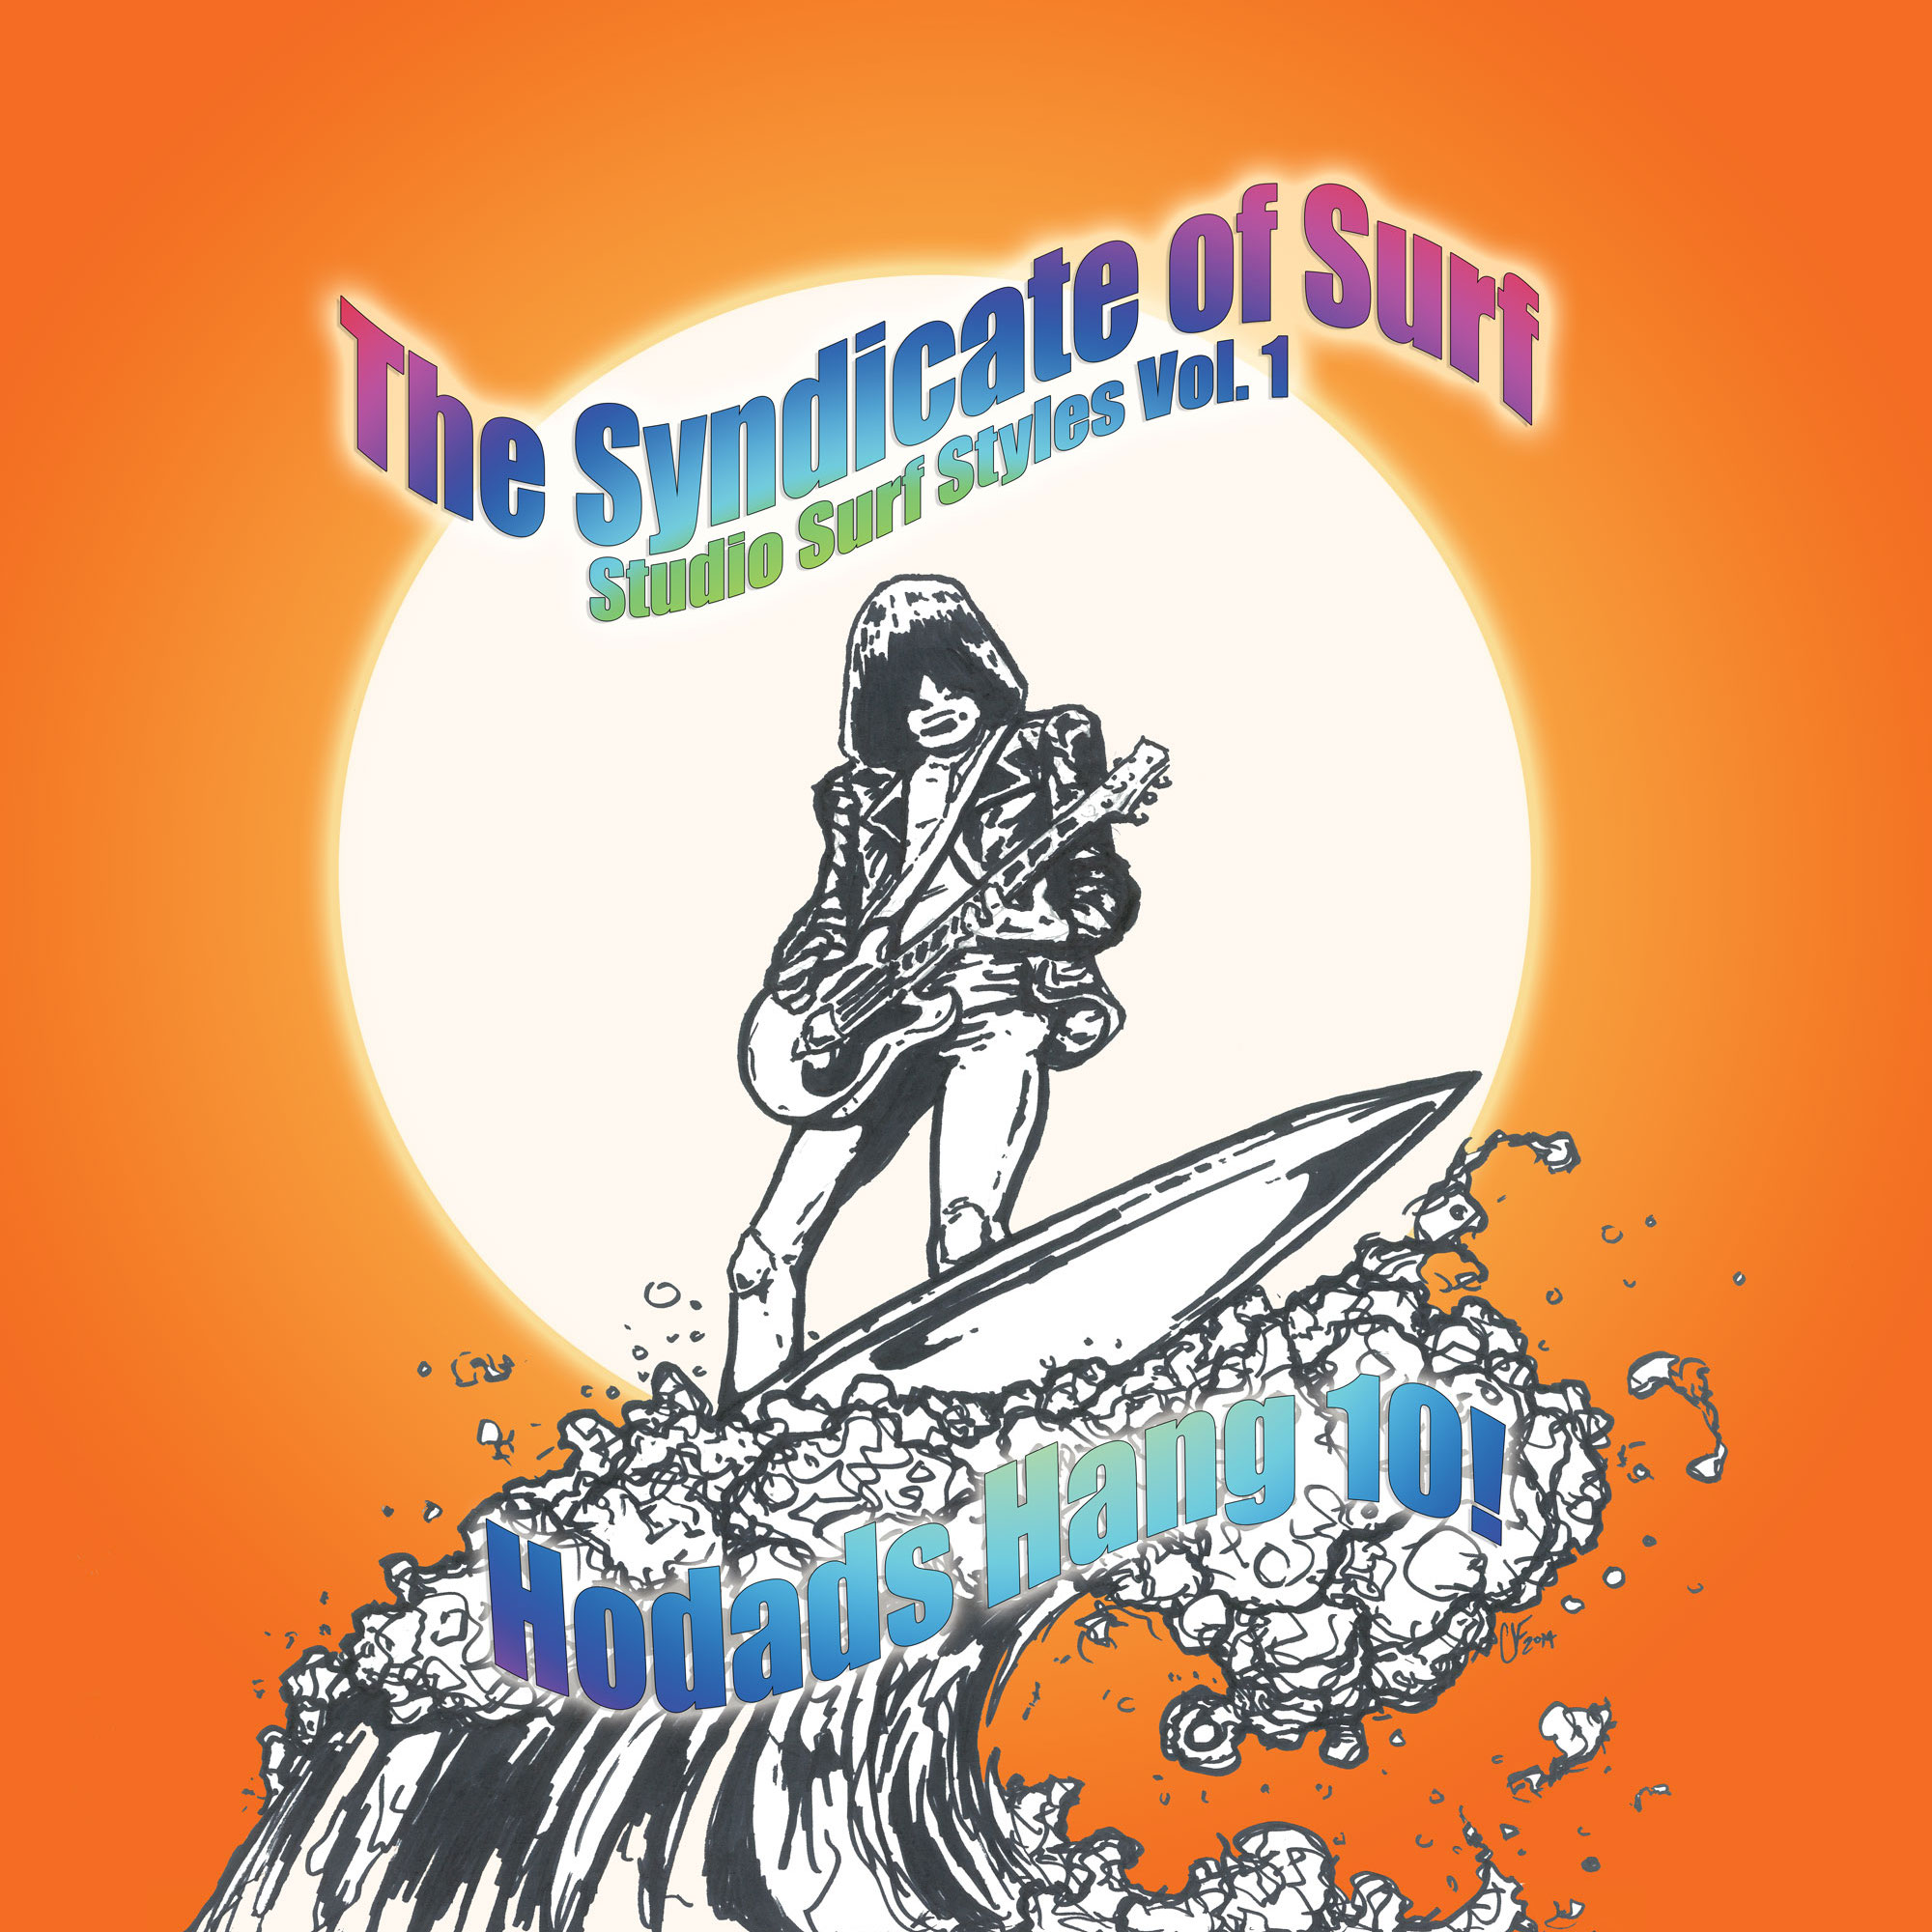 SRW008 The Syndicate of Surf - Studio Surf Styles Volume 1 Hodads Hang 10! Image